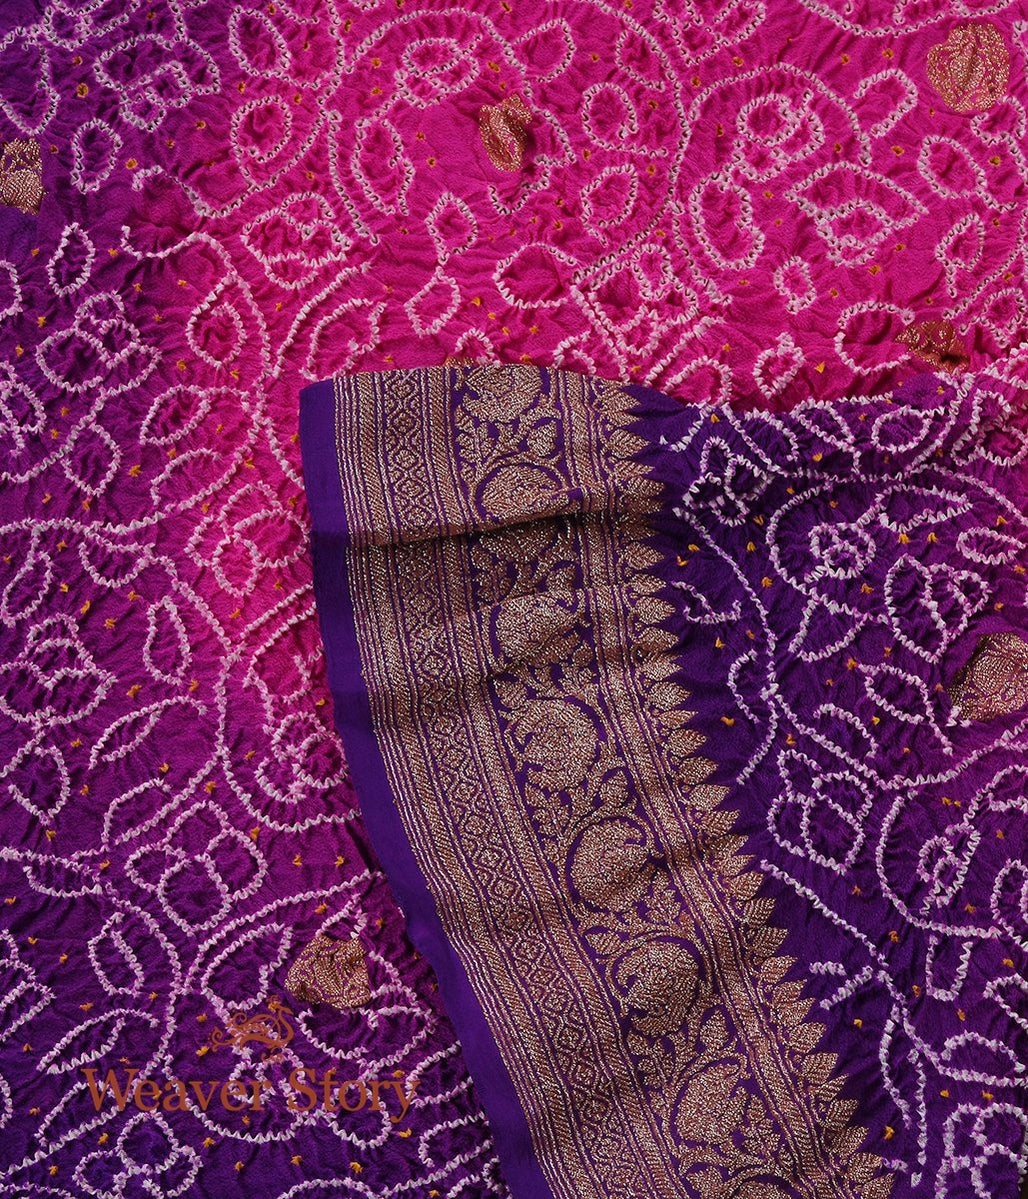 Handwoven Purple and Pink Ombre Dye Kadhwa Bandhej Dupatta